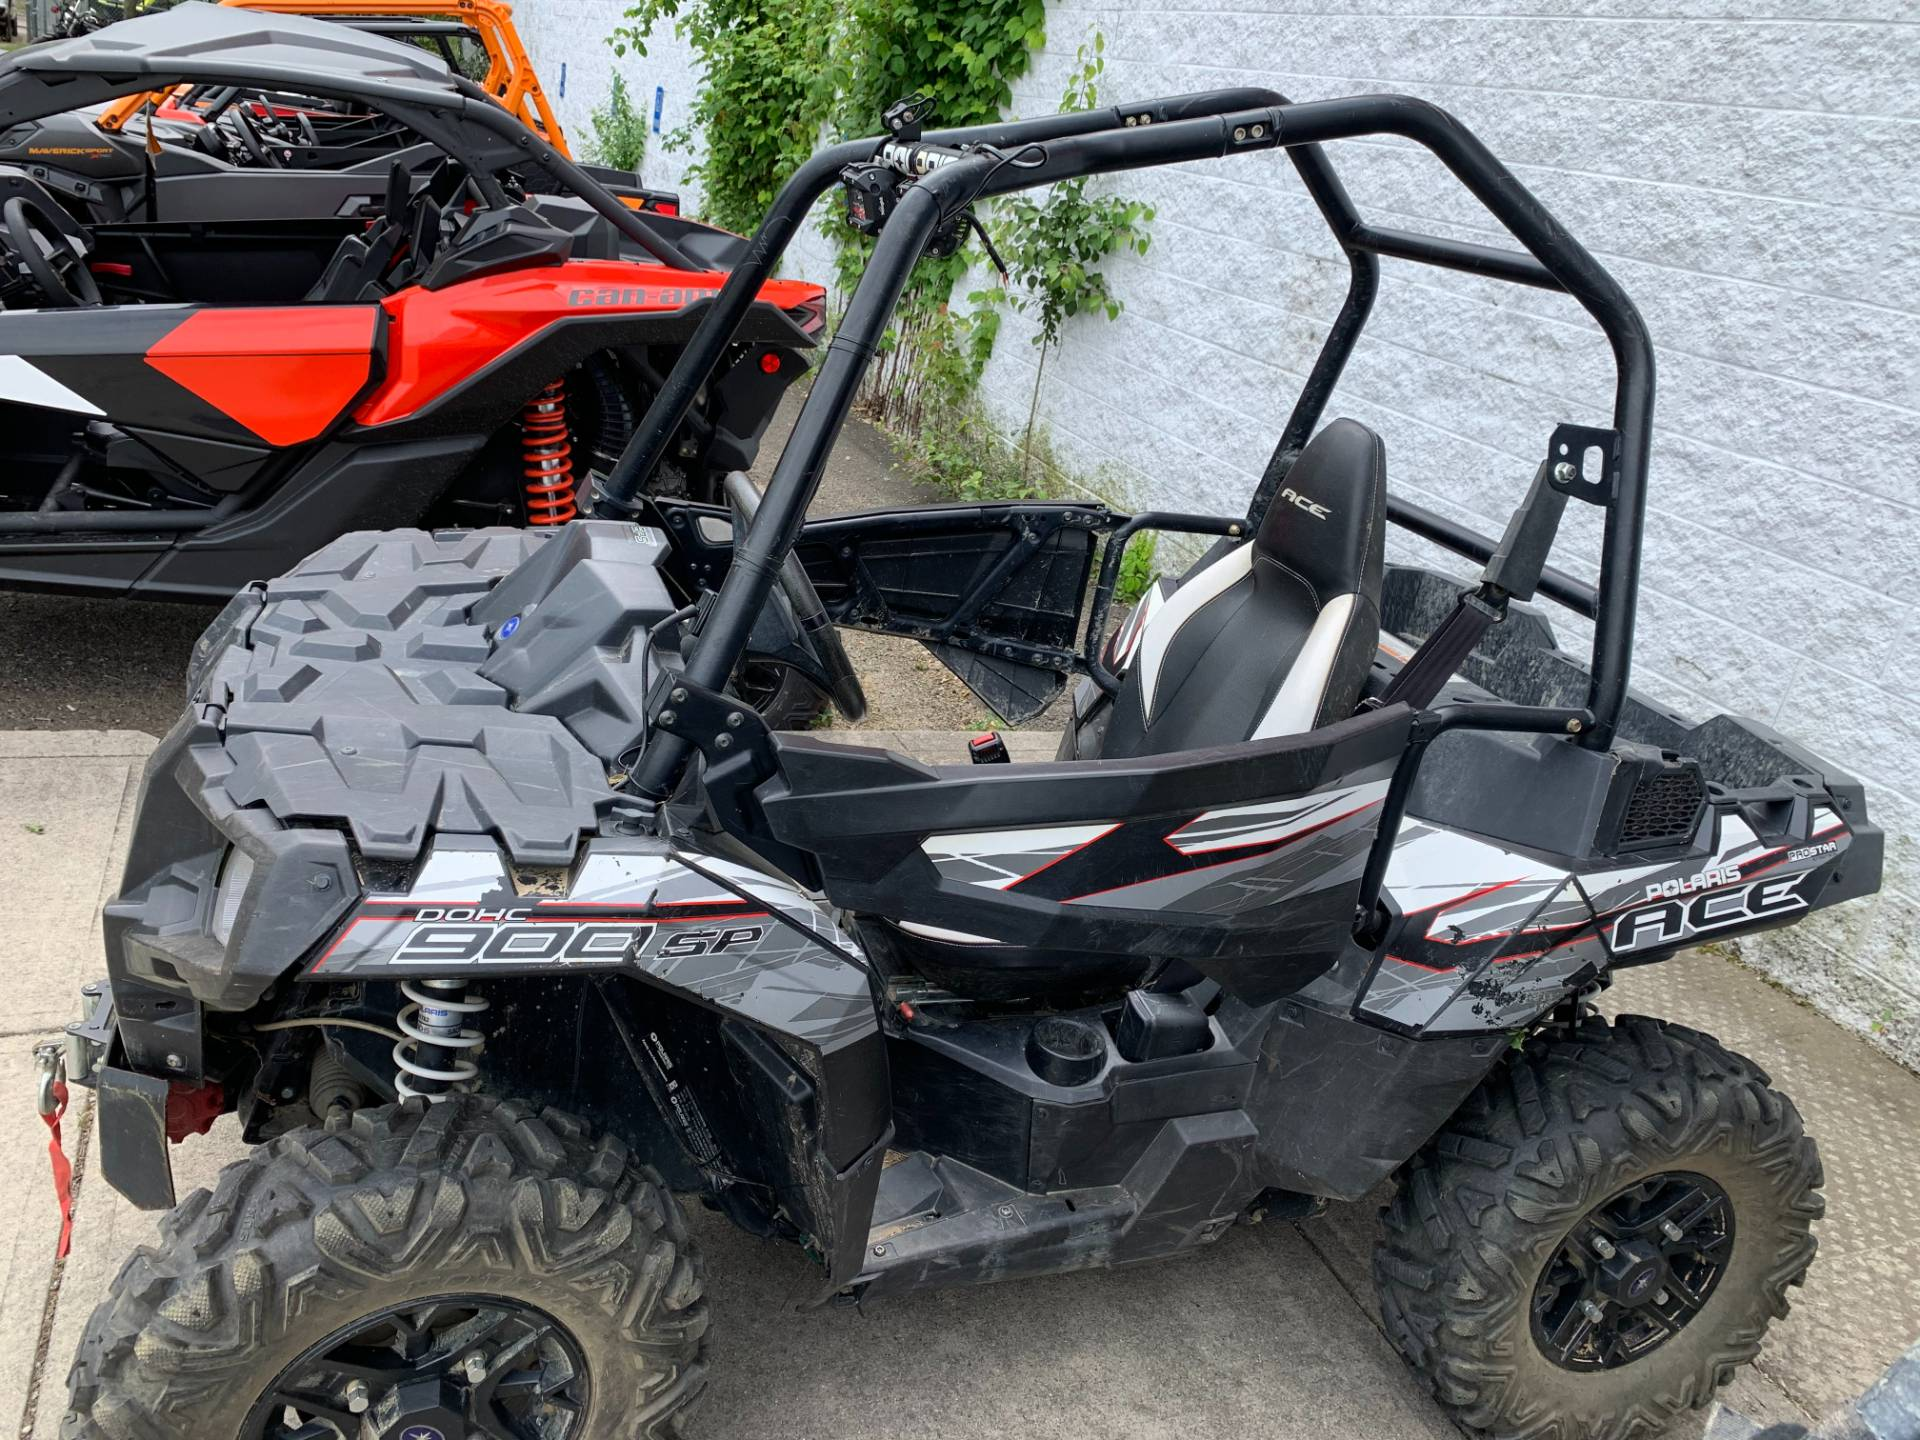 2016 Polaris ACE900SP in Columbus, Ohio - Photo 2